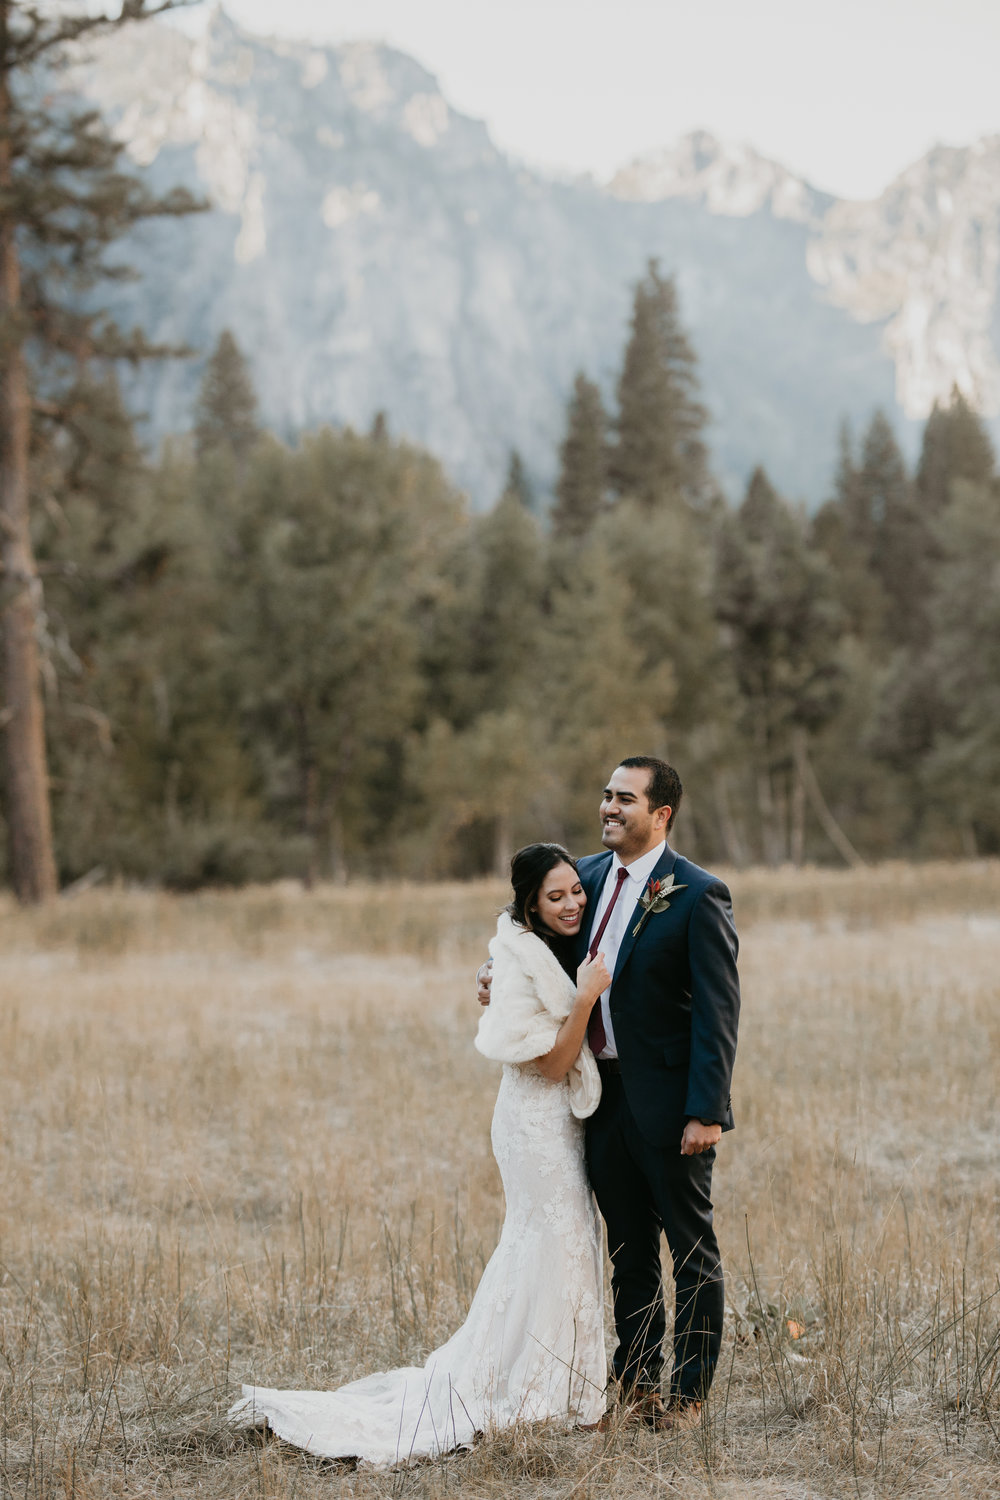 nicole-daacke-photography-intimate-elopement-wedding-yosemite-national-park-california-taft-point-sunset-photos-yosemite-valley-tunnel-view-first-look-sunrise-golden-granite-hiking-adventure-wedding-adventurous-elopement-photographer-30.jpg